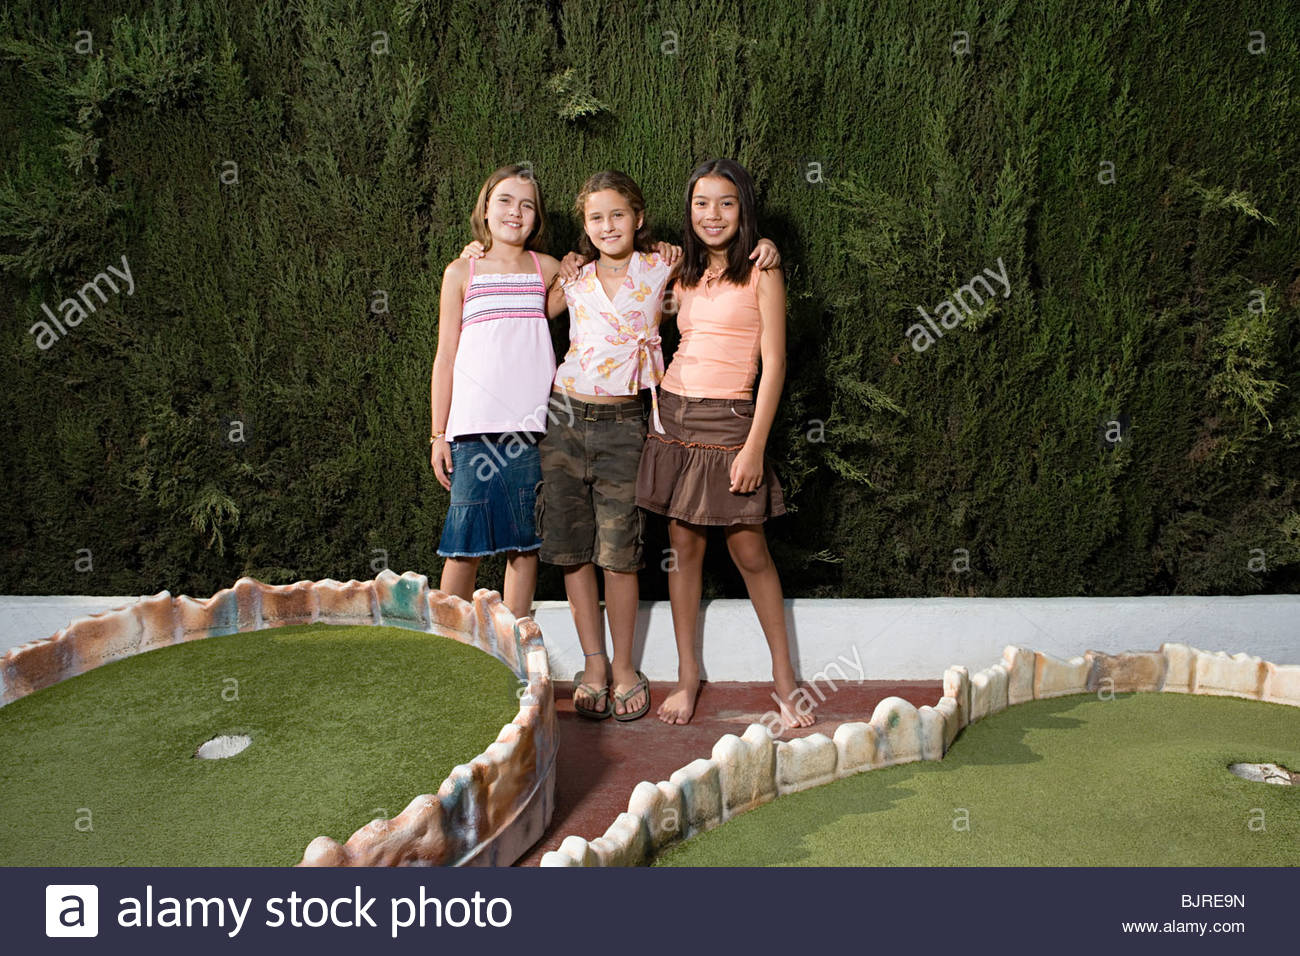 Girls at a miniature golf course - Stock Image